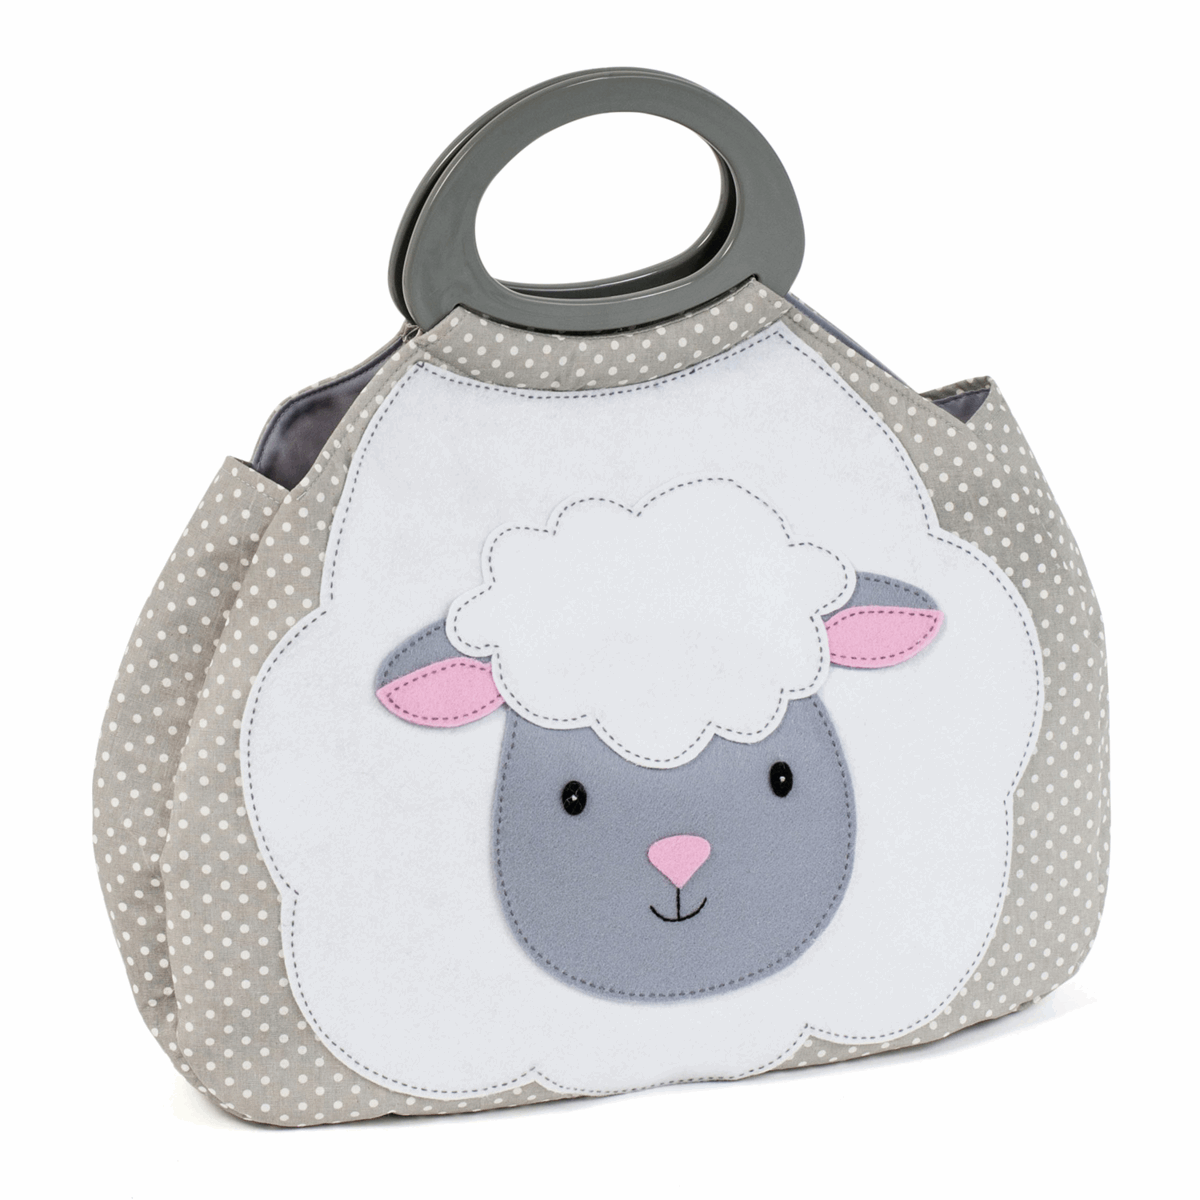 Picture of Knitting Bag: Gathered: Novelty Sheep: Grey Spot